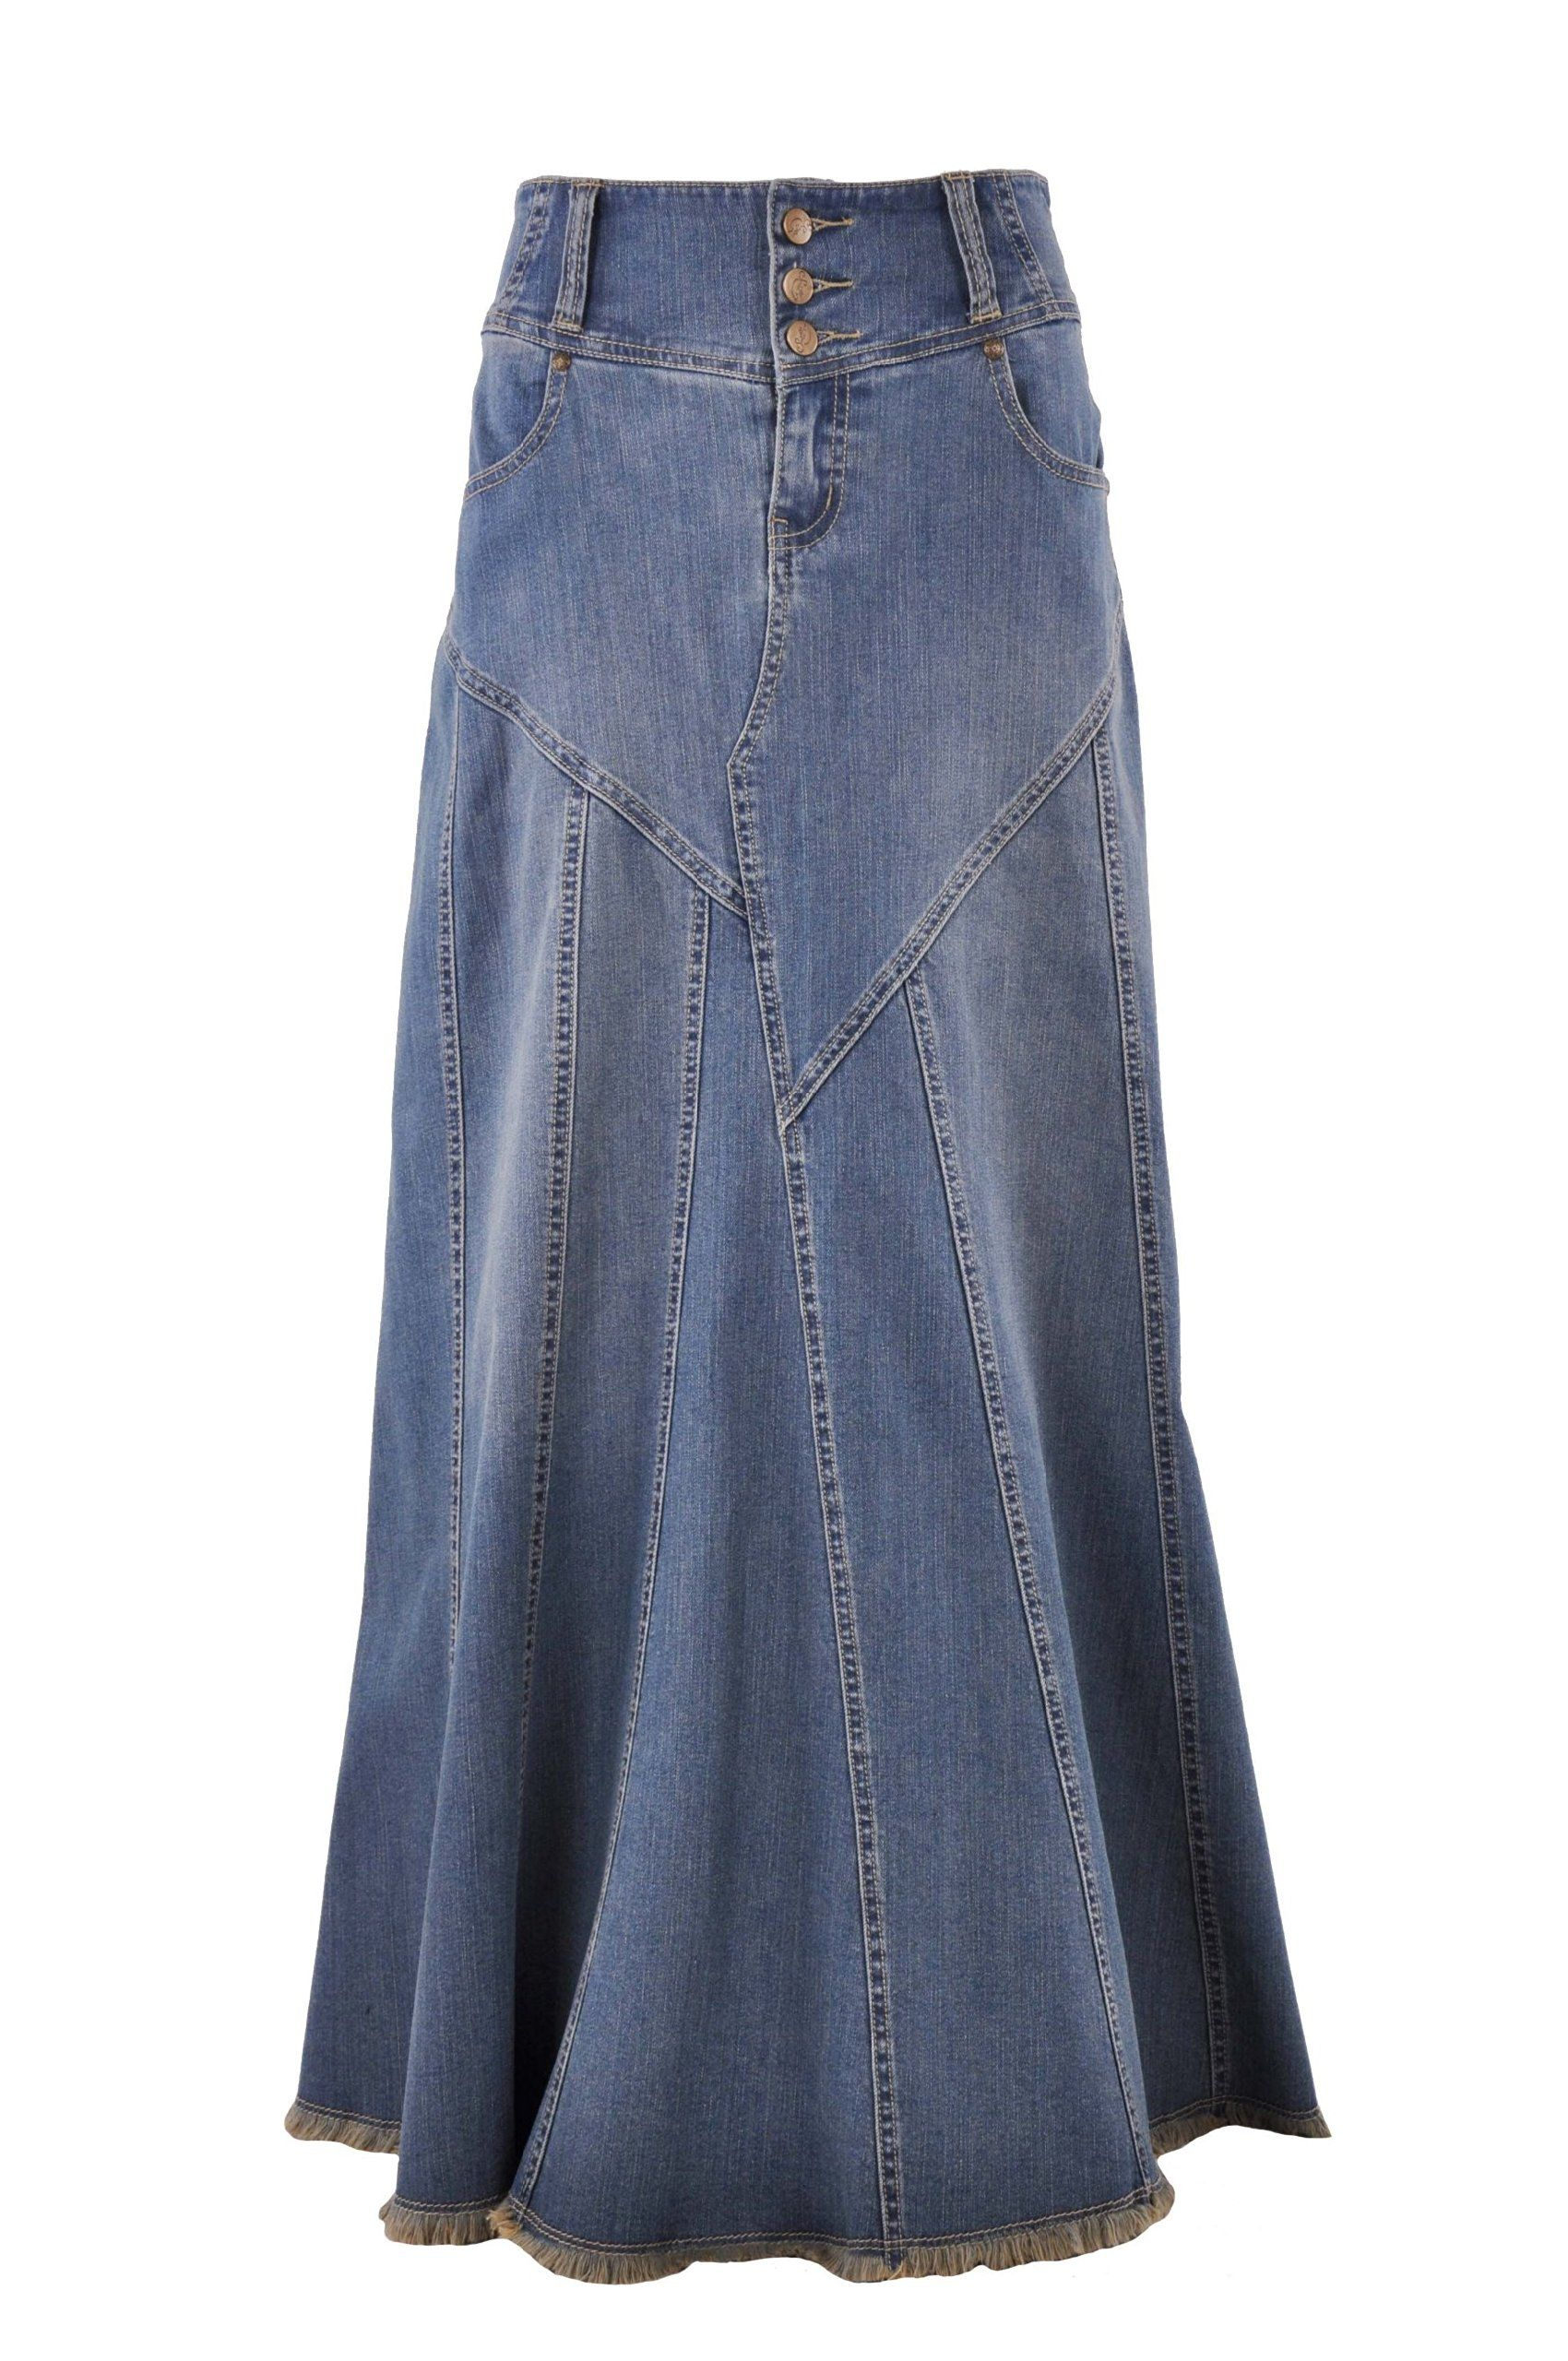 Style J Fantastic Flared Long Jean Skirt - have this one in khaki ...